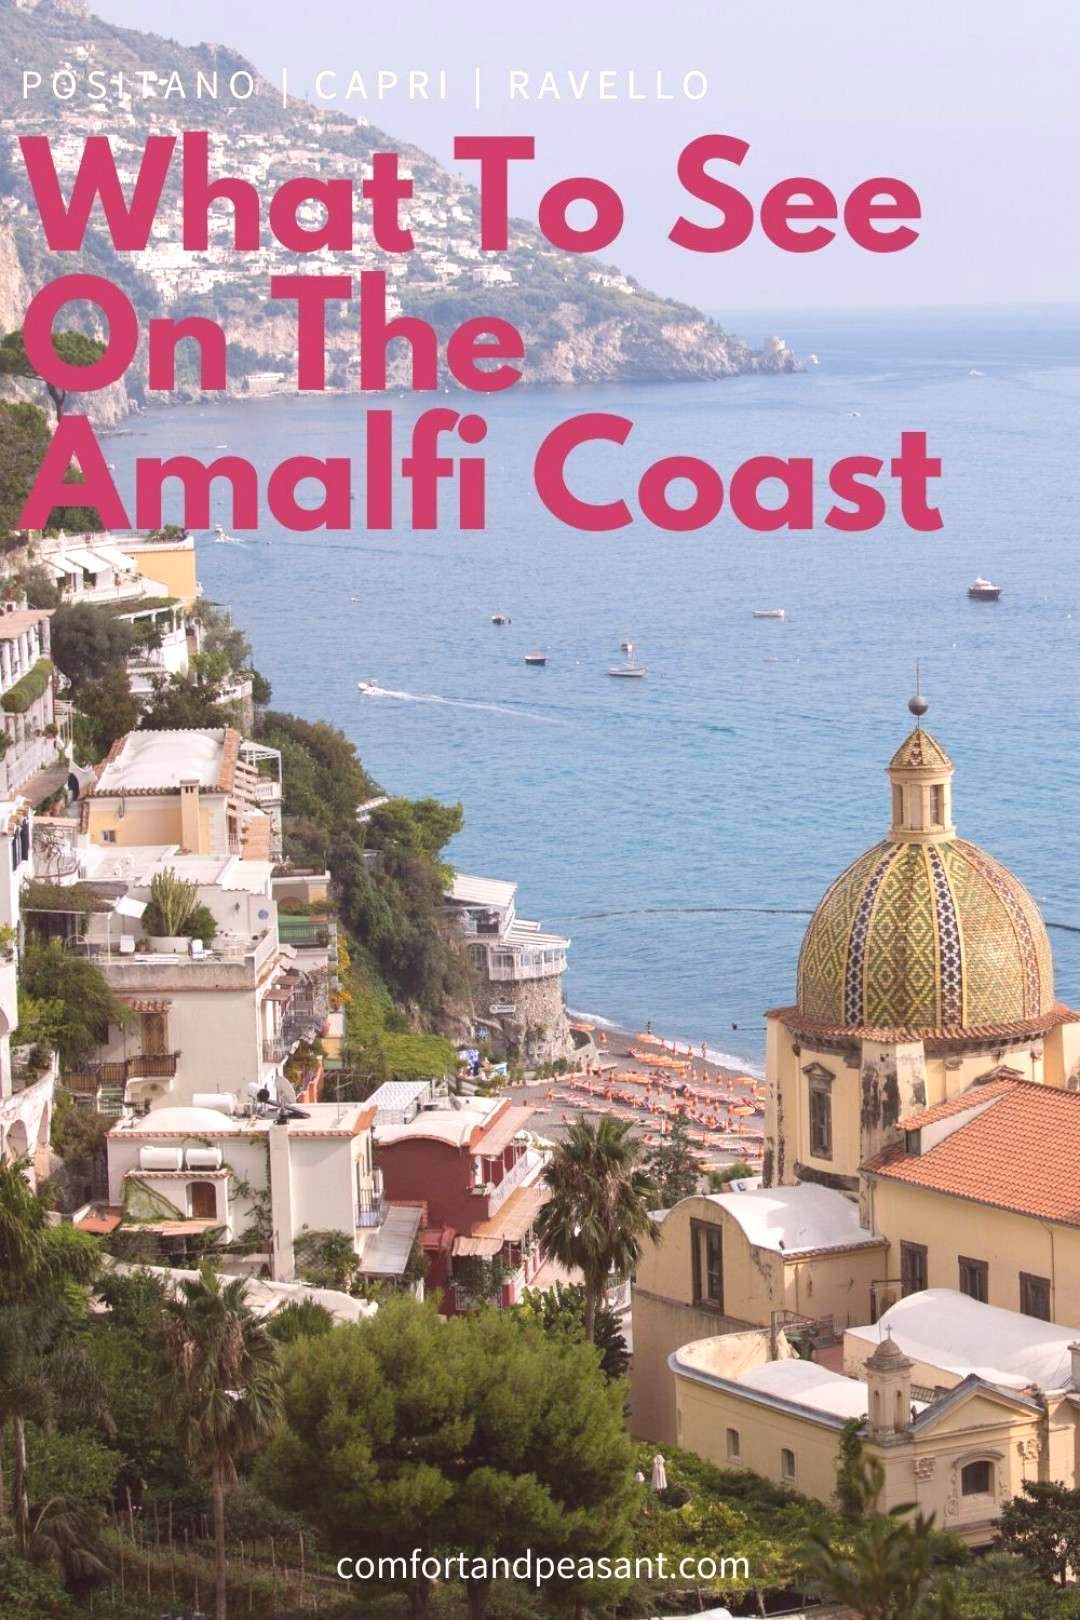 6 THINGS YOU ABSOLUTELY MUST DO ON THE AMALFI COAST ~ Comfort amp Peasant A guide to the 6 things you